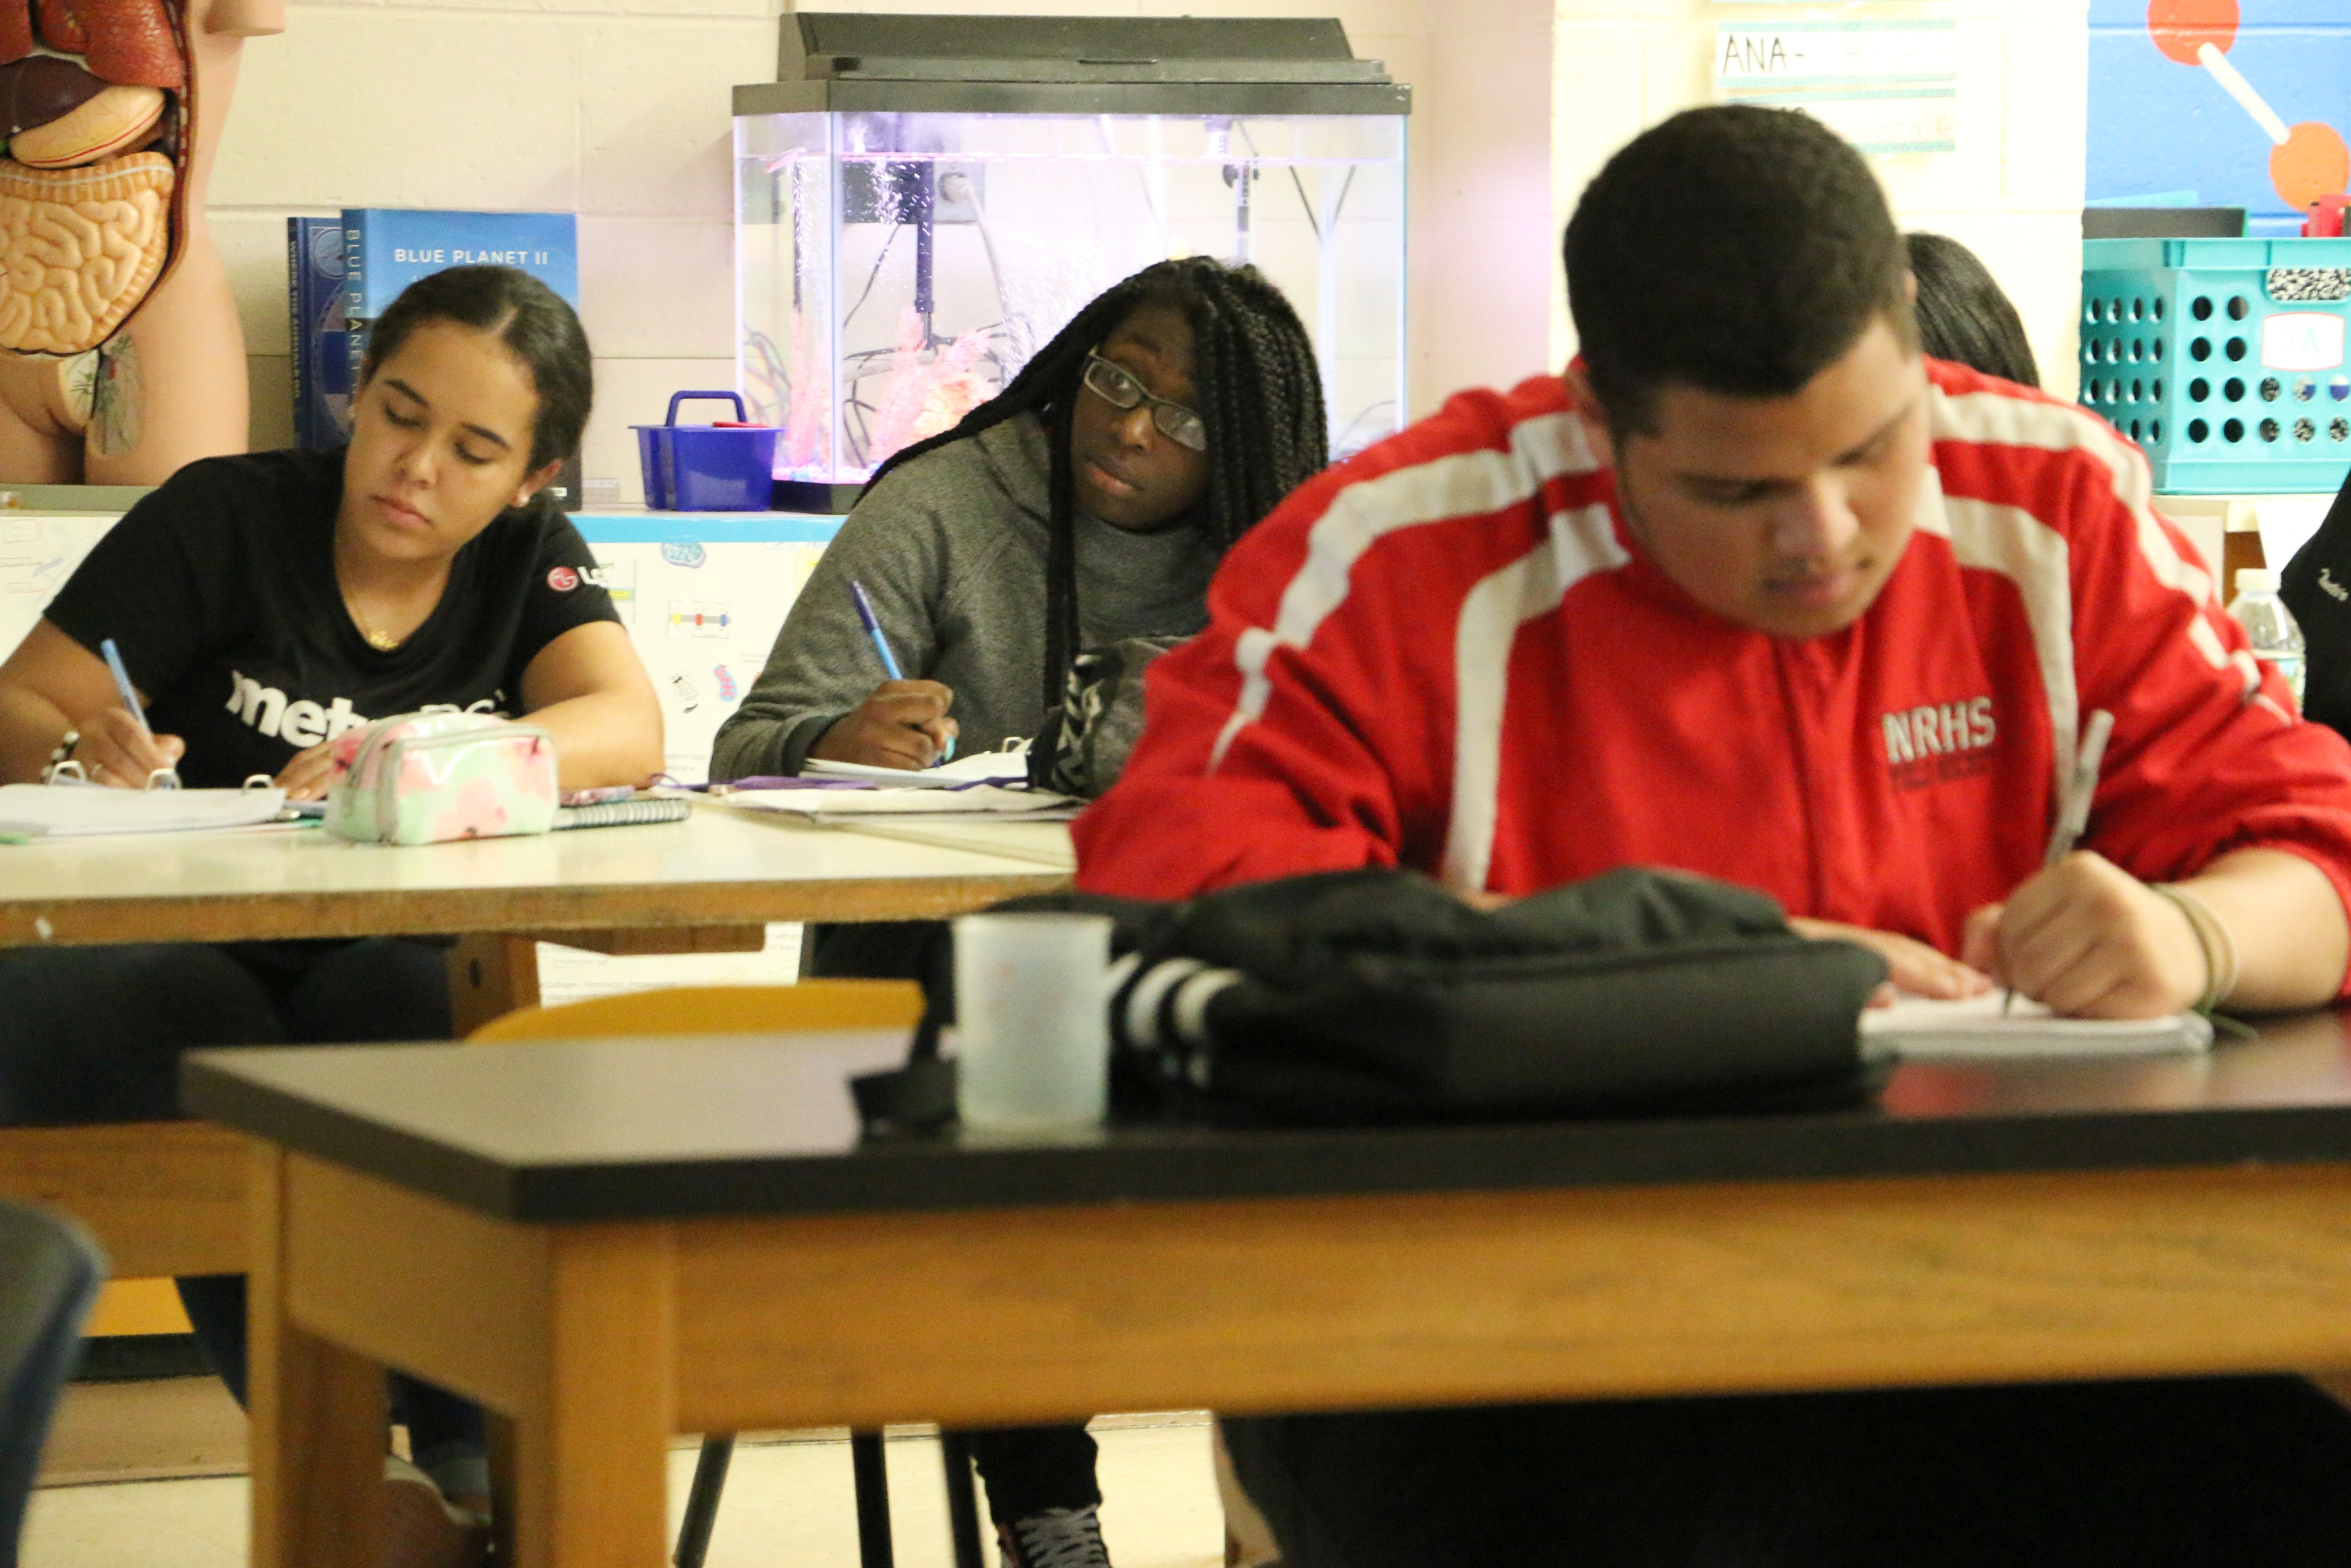 In September 2020, the district plans to open a new high school, the Newark School of Global Studies, along with the Sir Isaac Newton Elementary School. (Pictured are students at East Side High School.)